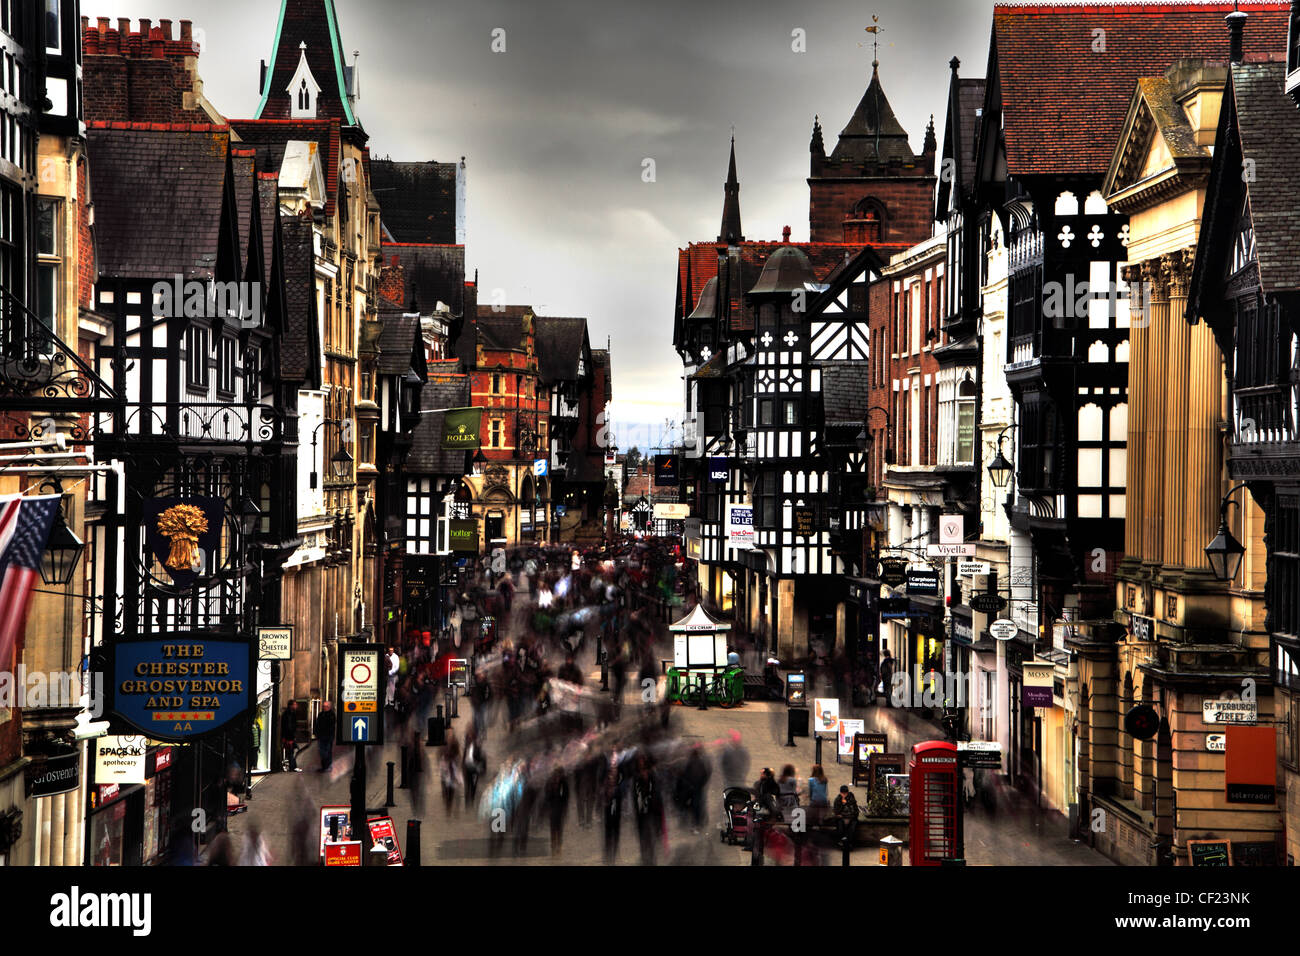 Chester city shoppers rushing around and going about their business in Northgate Street where it meets Frodsham - Stock Image